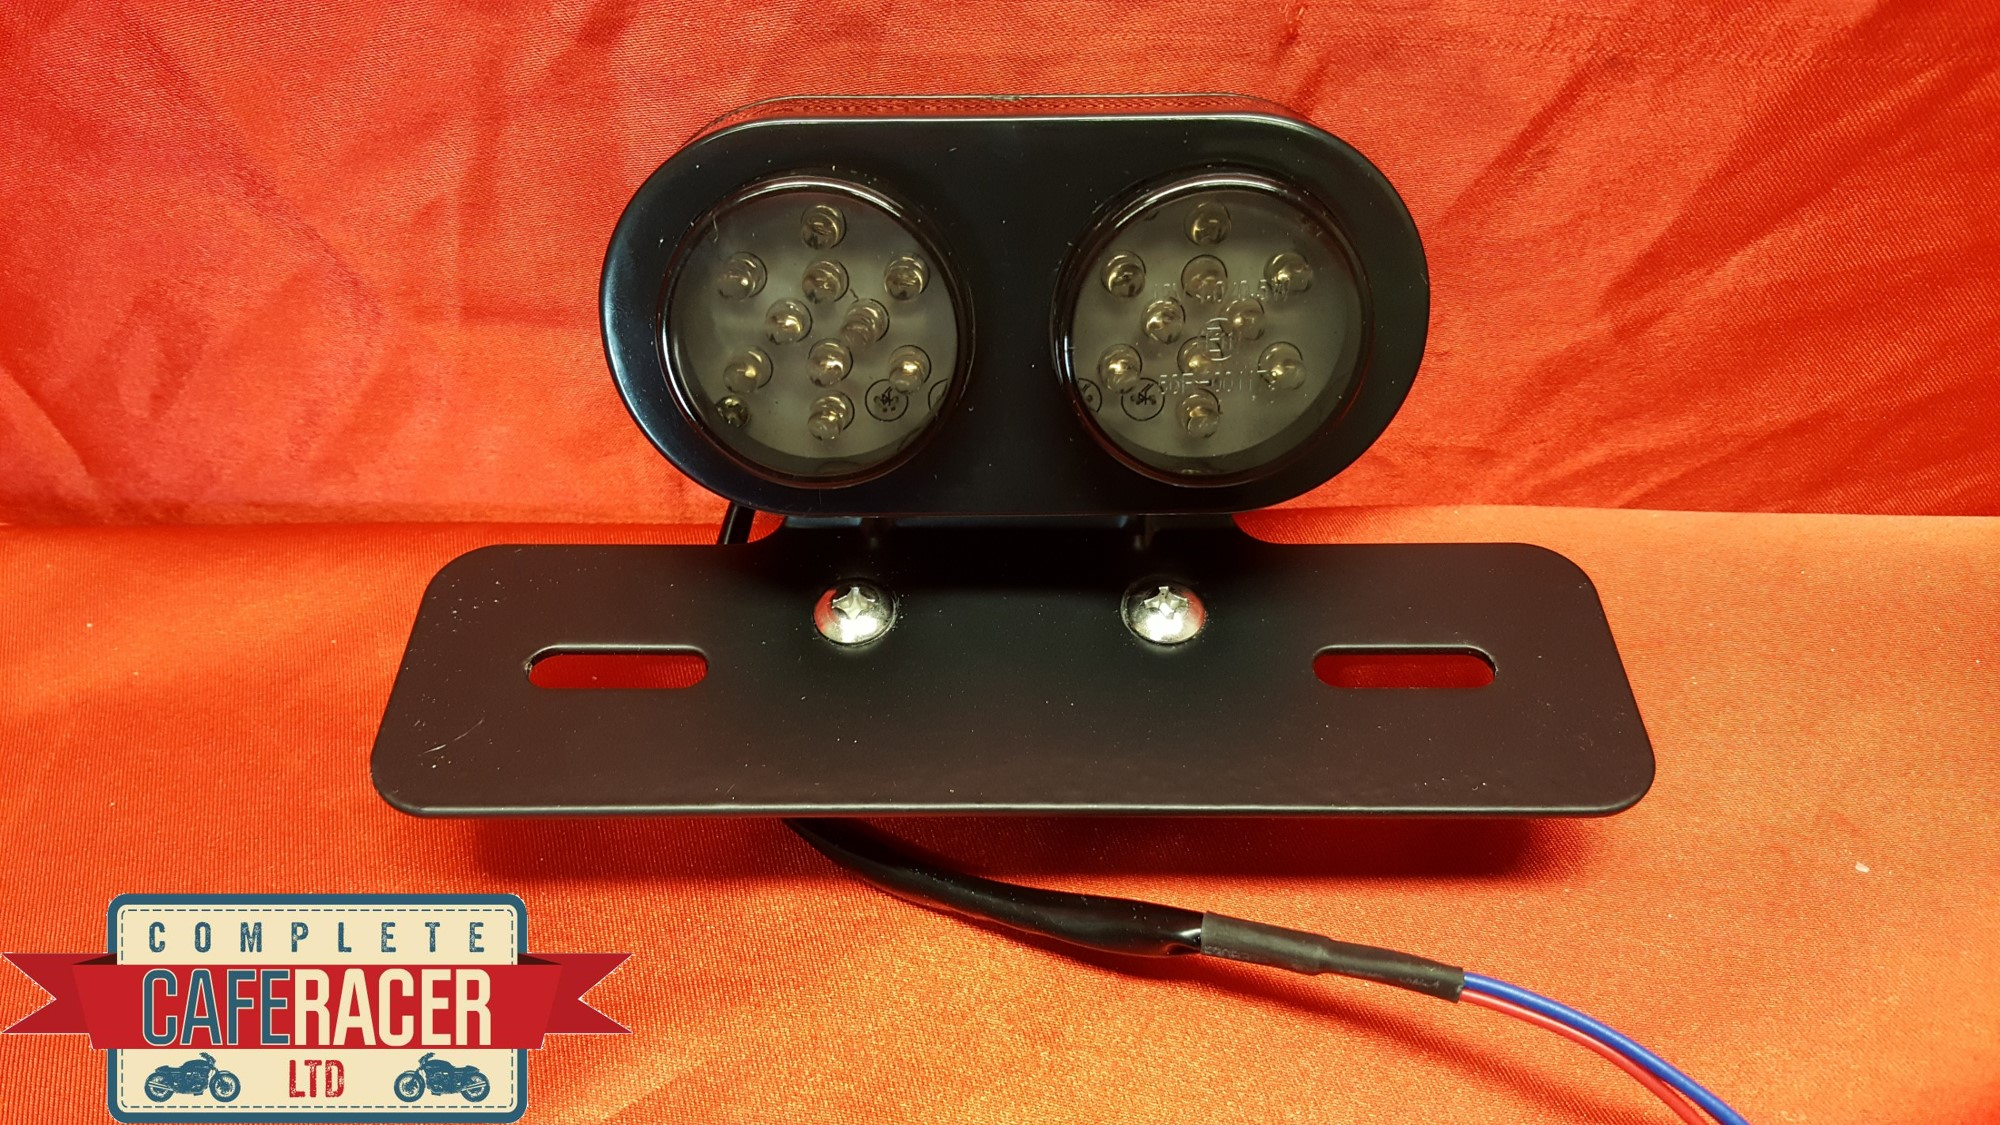 (L6b) CAFE RACER REAR TWIN ROUND SMOKED LIGHT + NUMBER PLATE BRACKET + LIGHTS